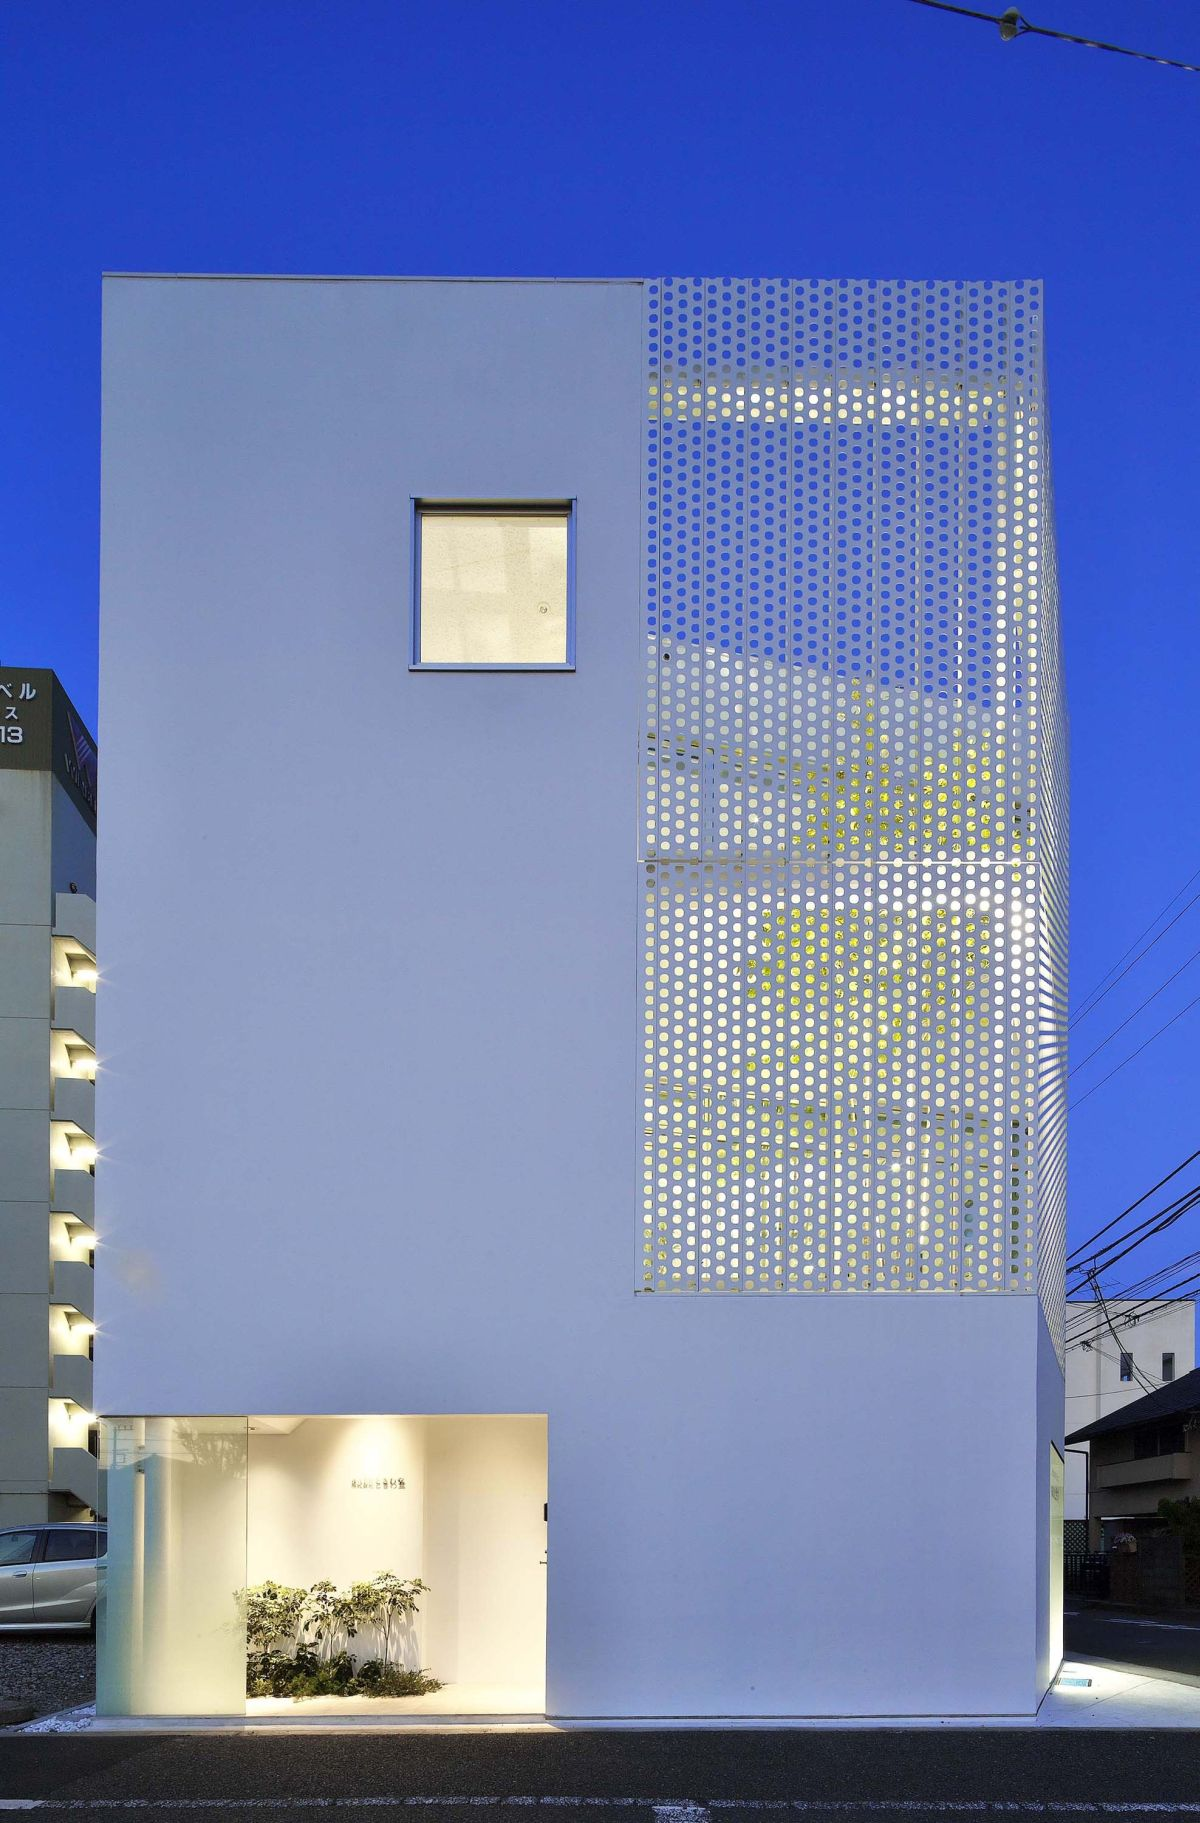 White house with a perforated facade angle